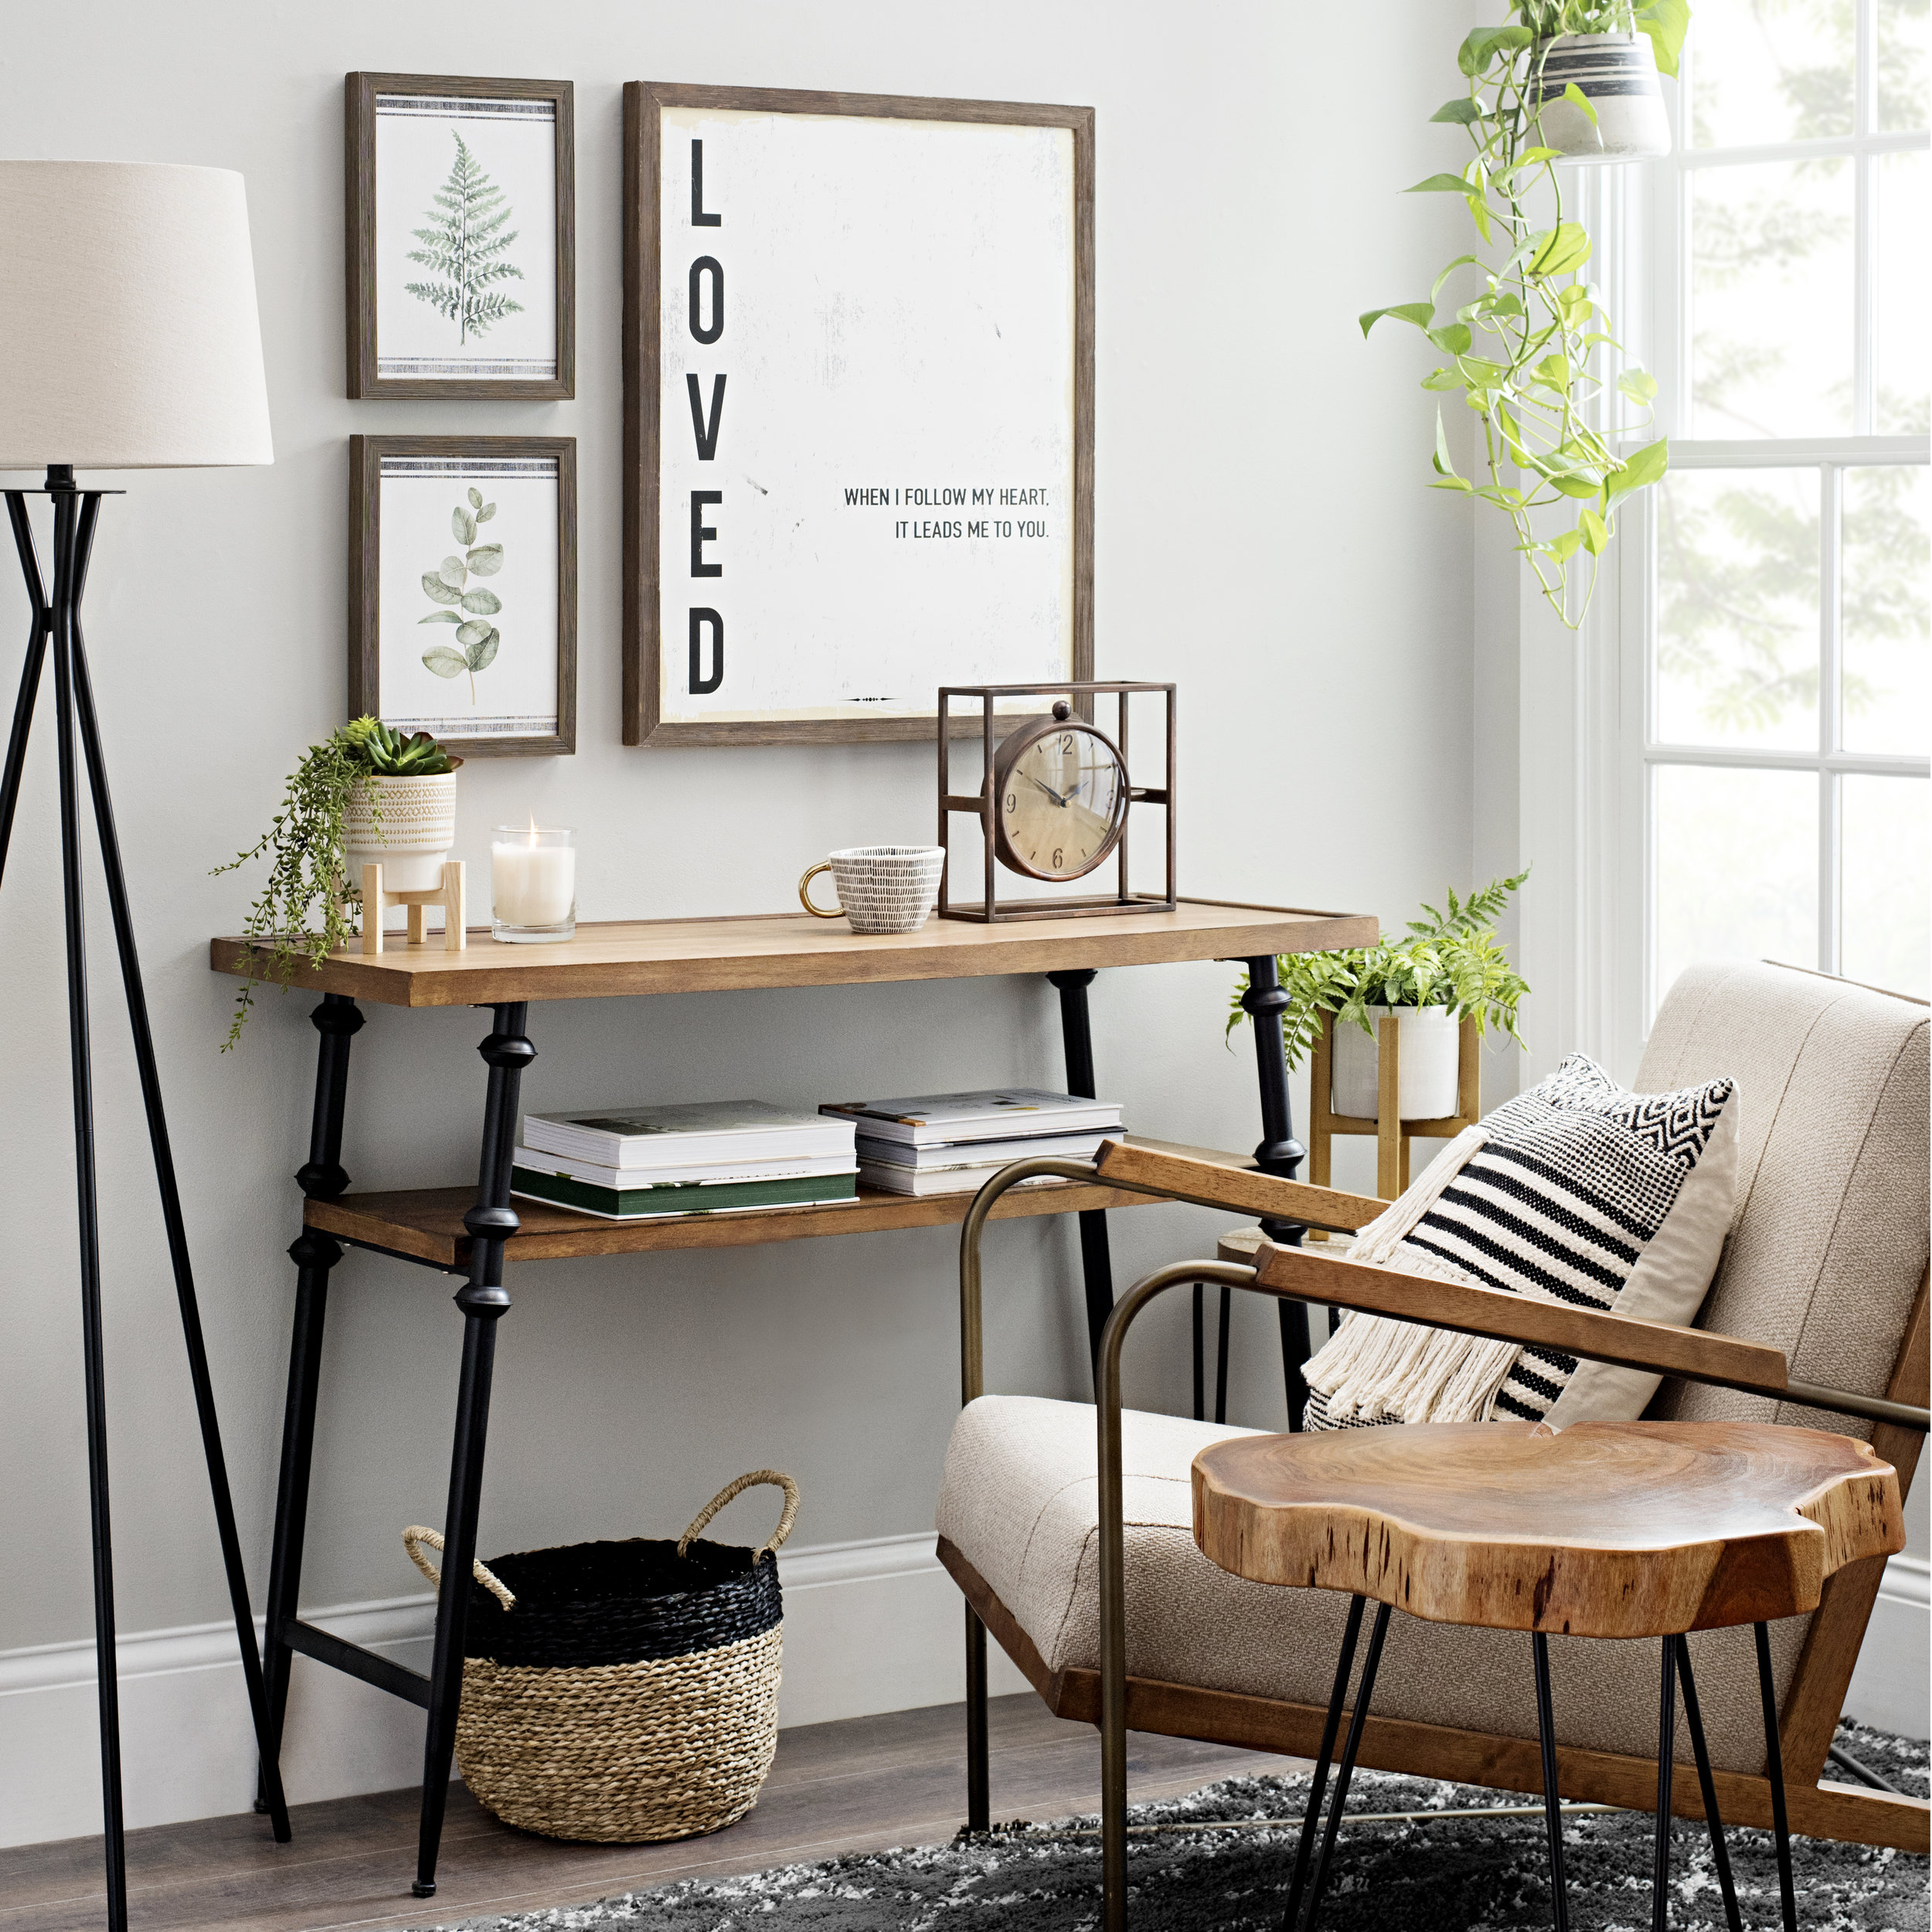 Kirkland's - Decorating with Natural Elements